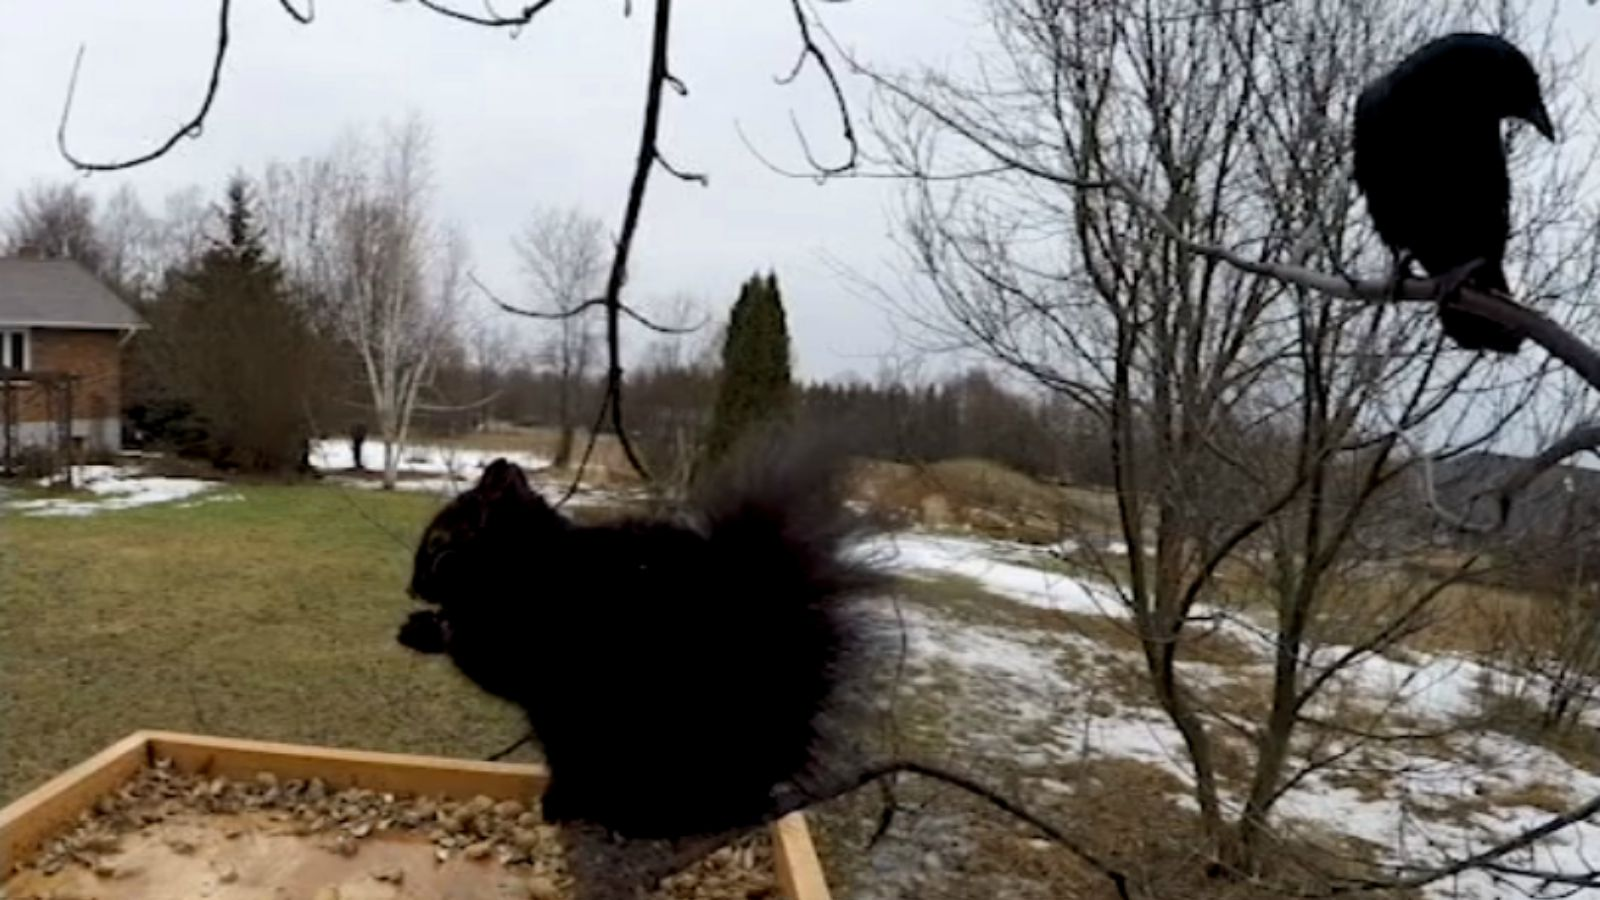 Wild Crow Speaks to Squirrel Eating Peanuts at a Bird Feeder. He Is Amazing!